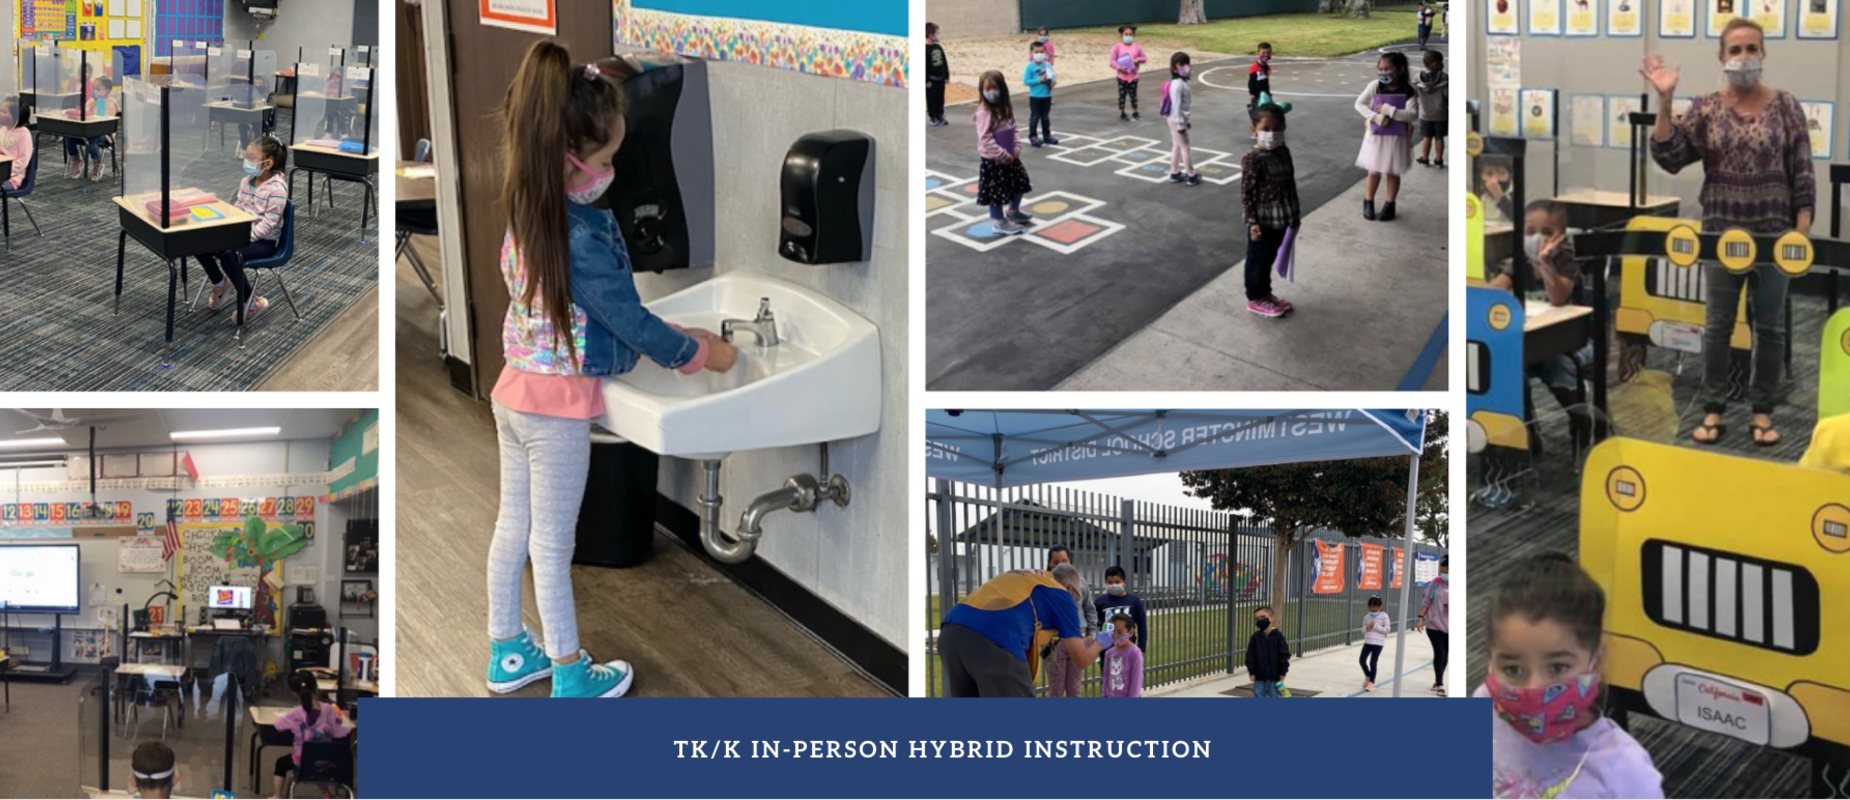 TK-K In-Person Hybrid Instruction - Pictures